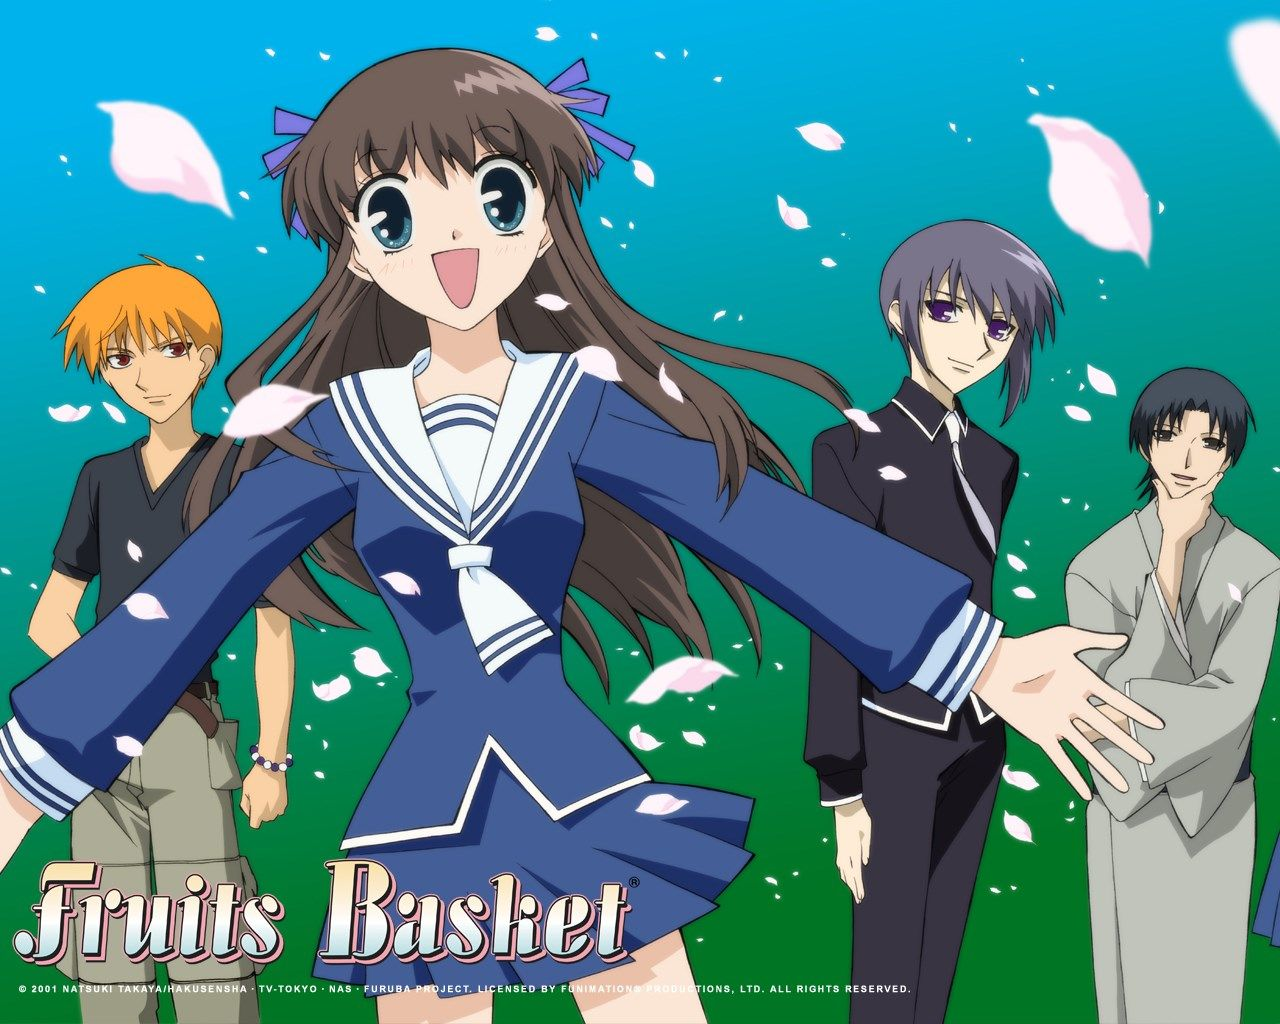 fruits basket pic 1080p high quality - fruits basket category